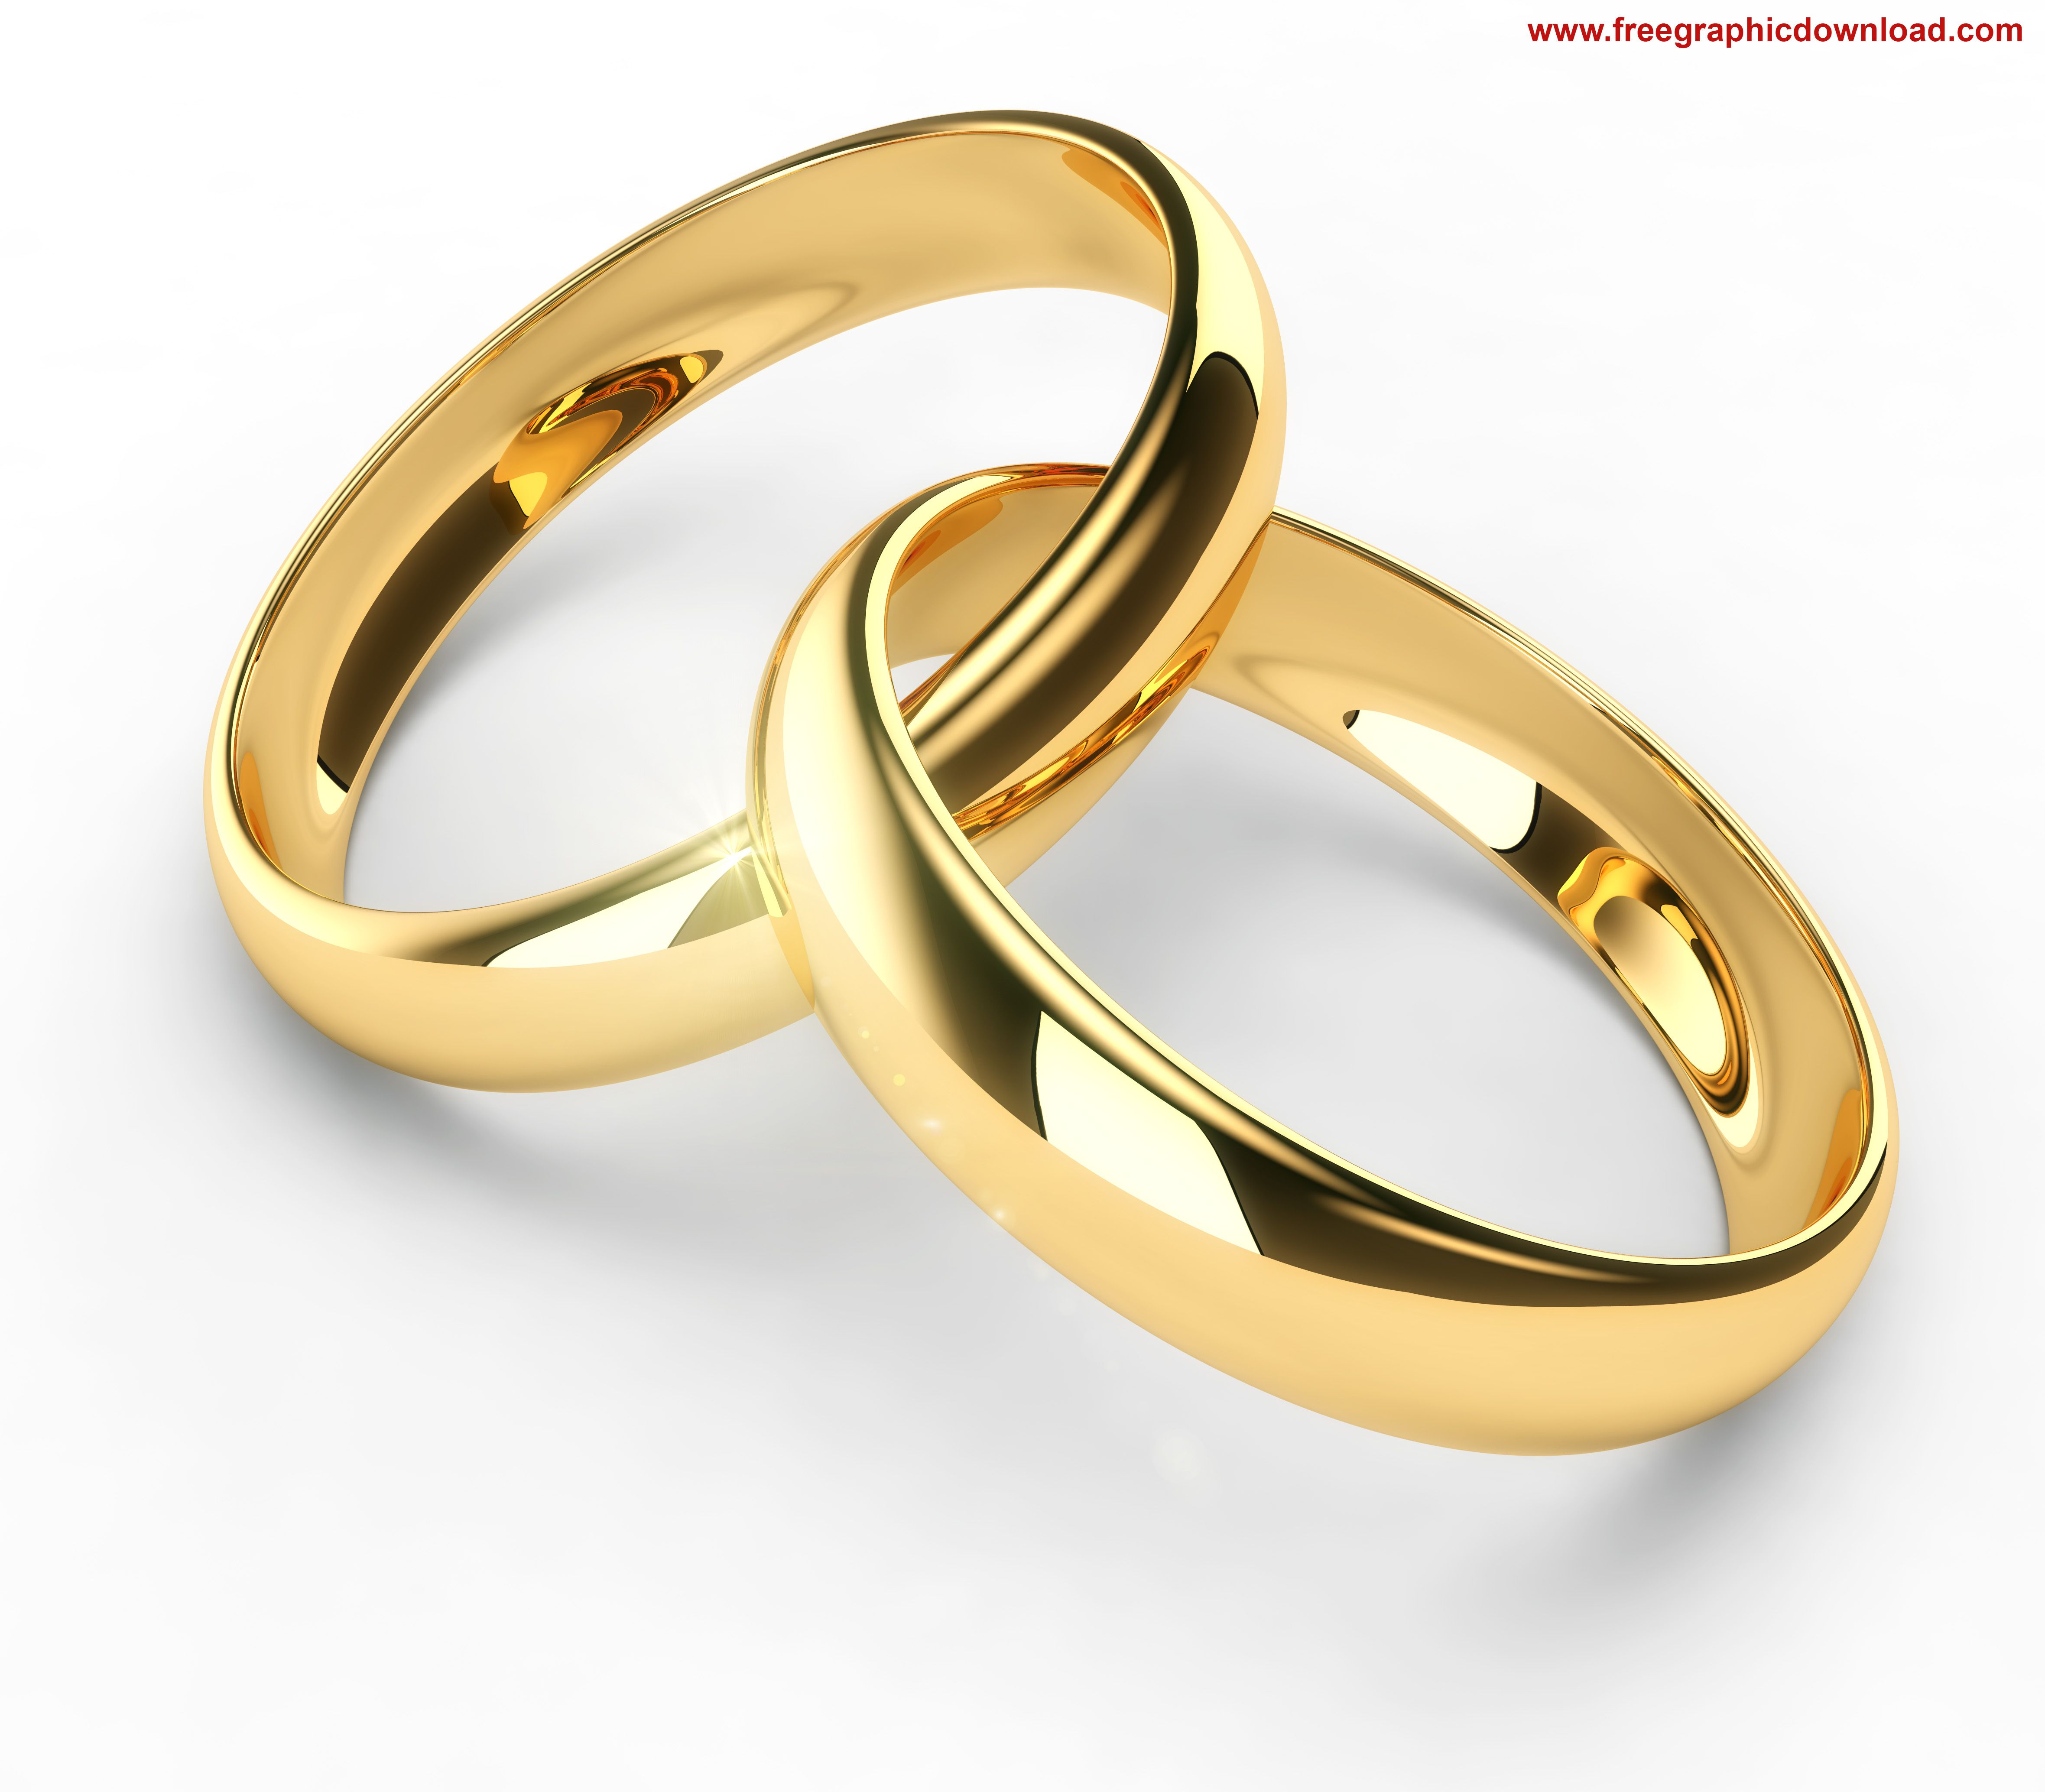 wedding rings - free large images | ring | pinterest | personal